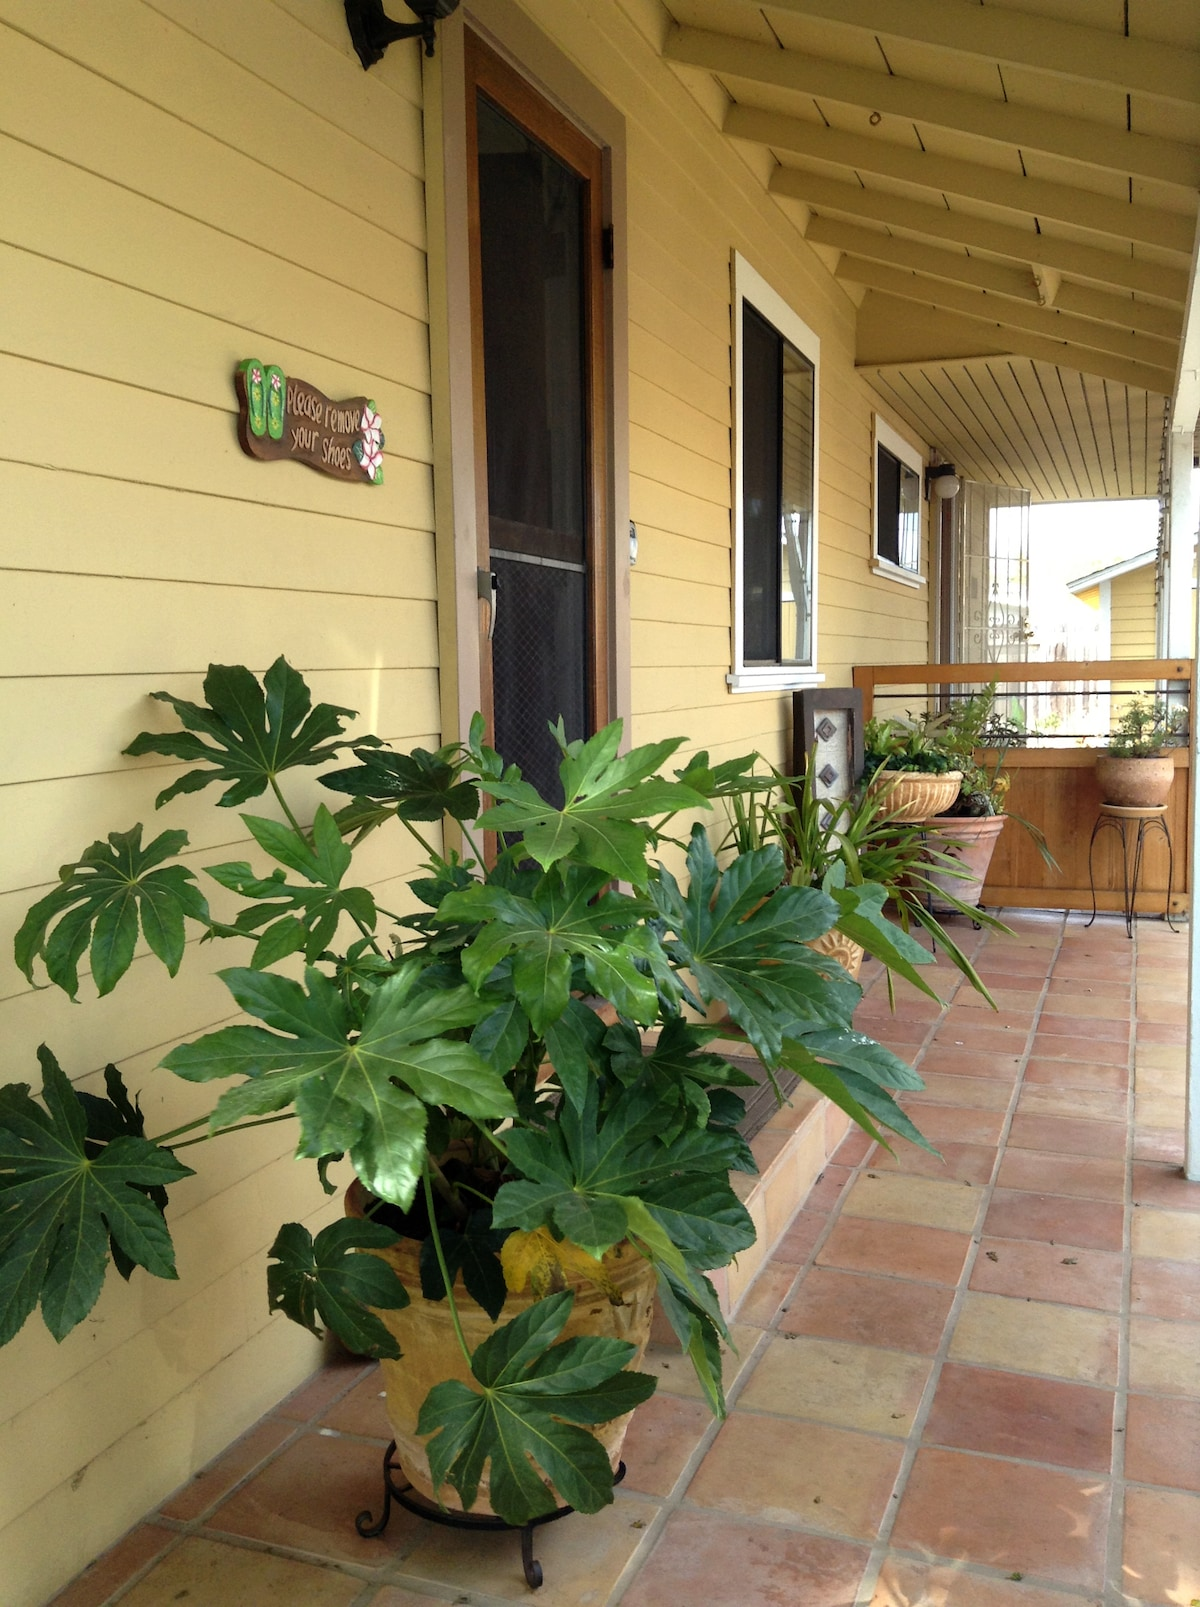 The porch entry way.